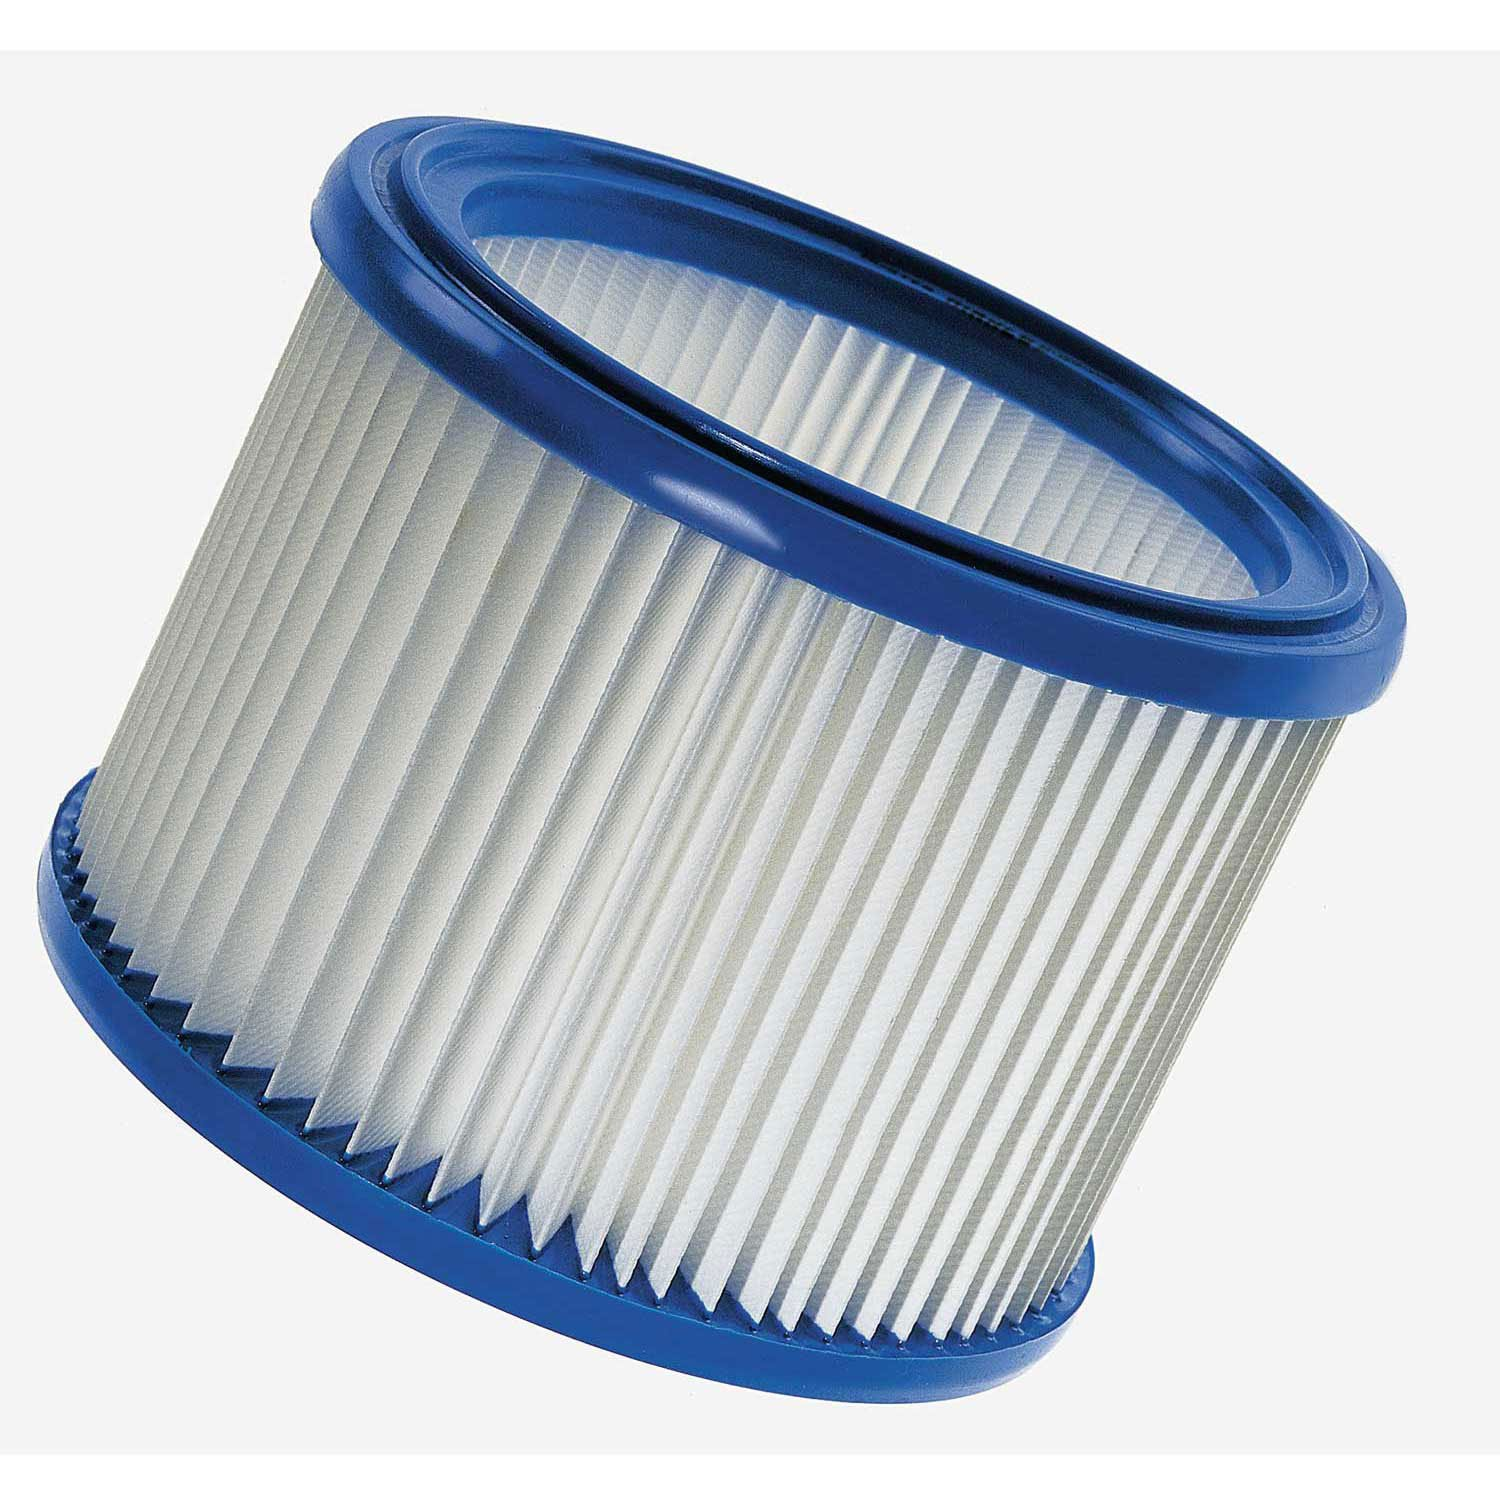 ALTO Replacement HEPA Filter - Attix & Aero Vacuums by Nilfisk